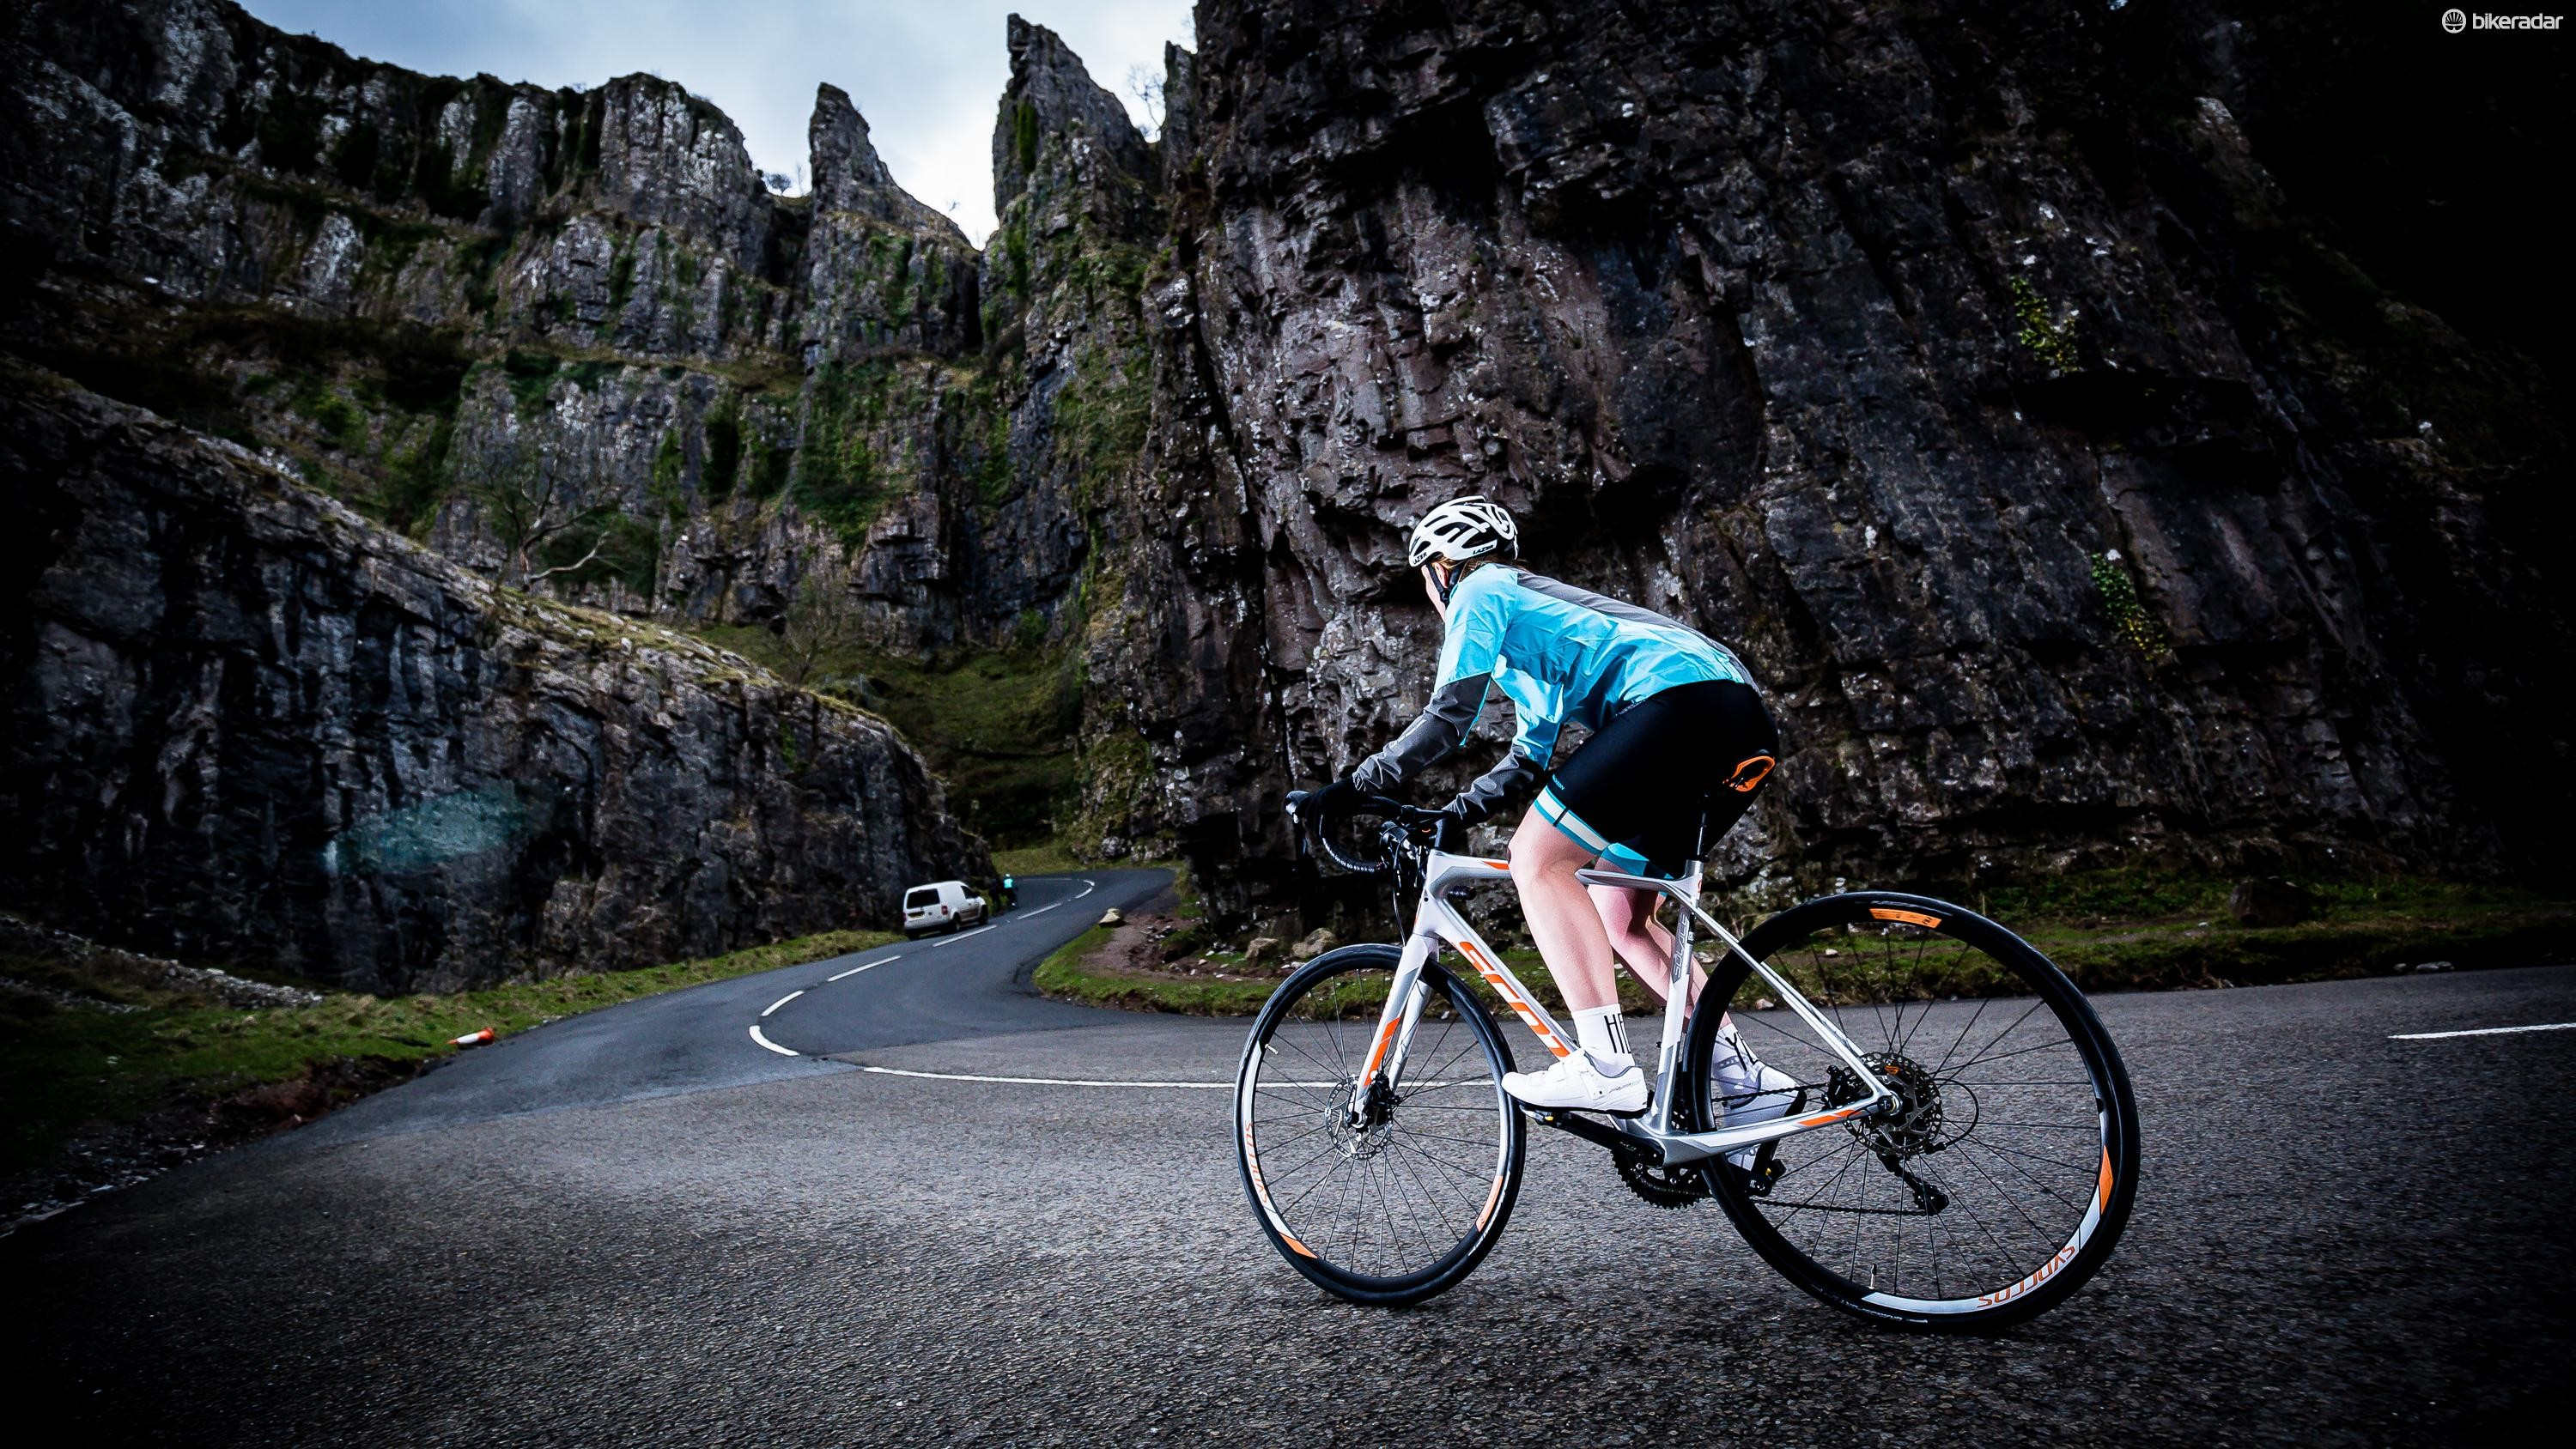 The Scott Contessa Solace 25 women's road bike in action